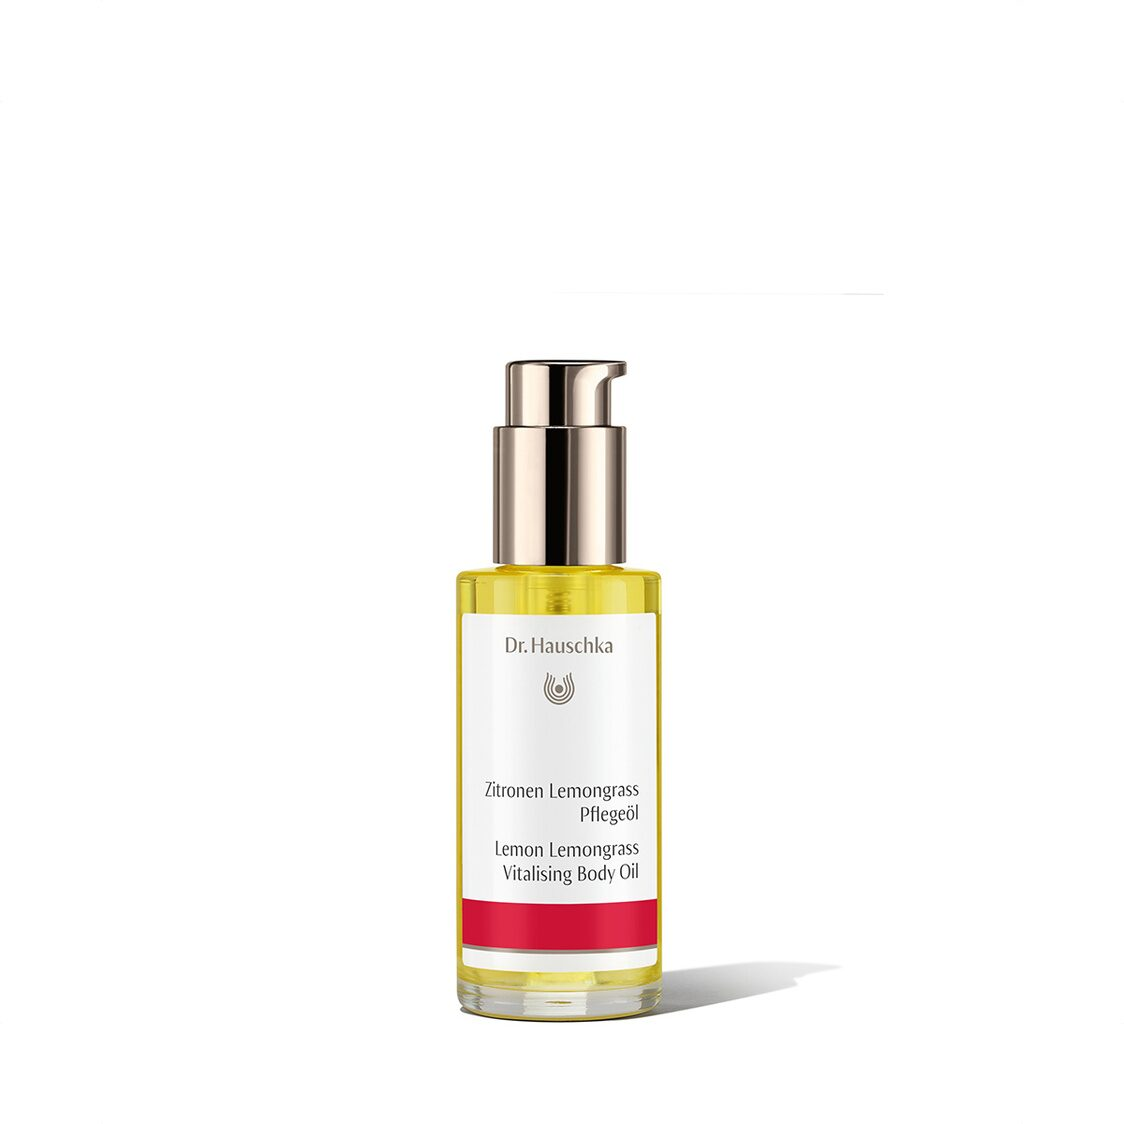 DrHauschka Lemon Lemongrass Vitalising Body Oil 75ml